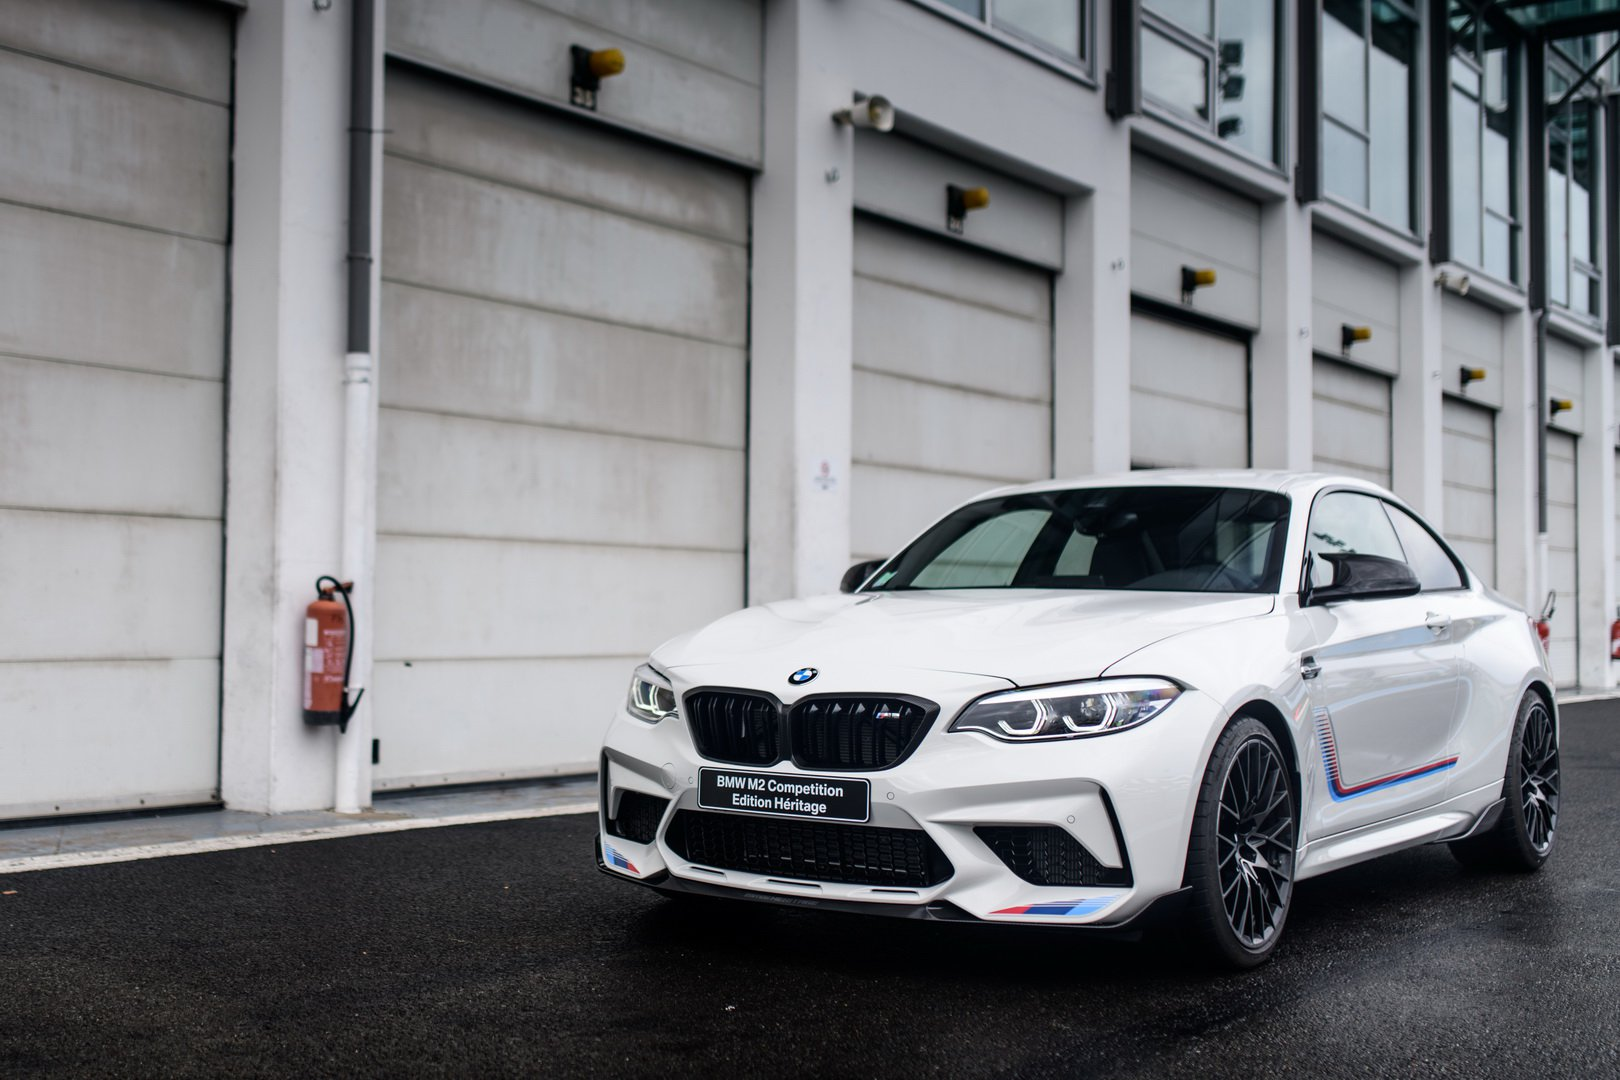 BMW-M2-Competition-Heritage-Edition-15